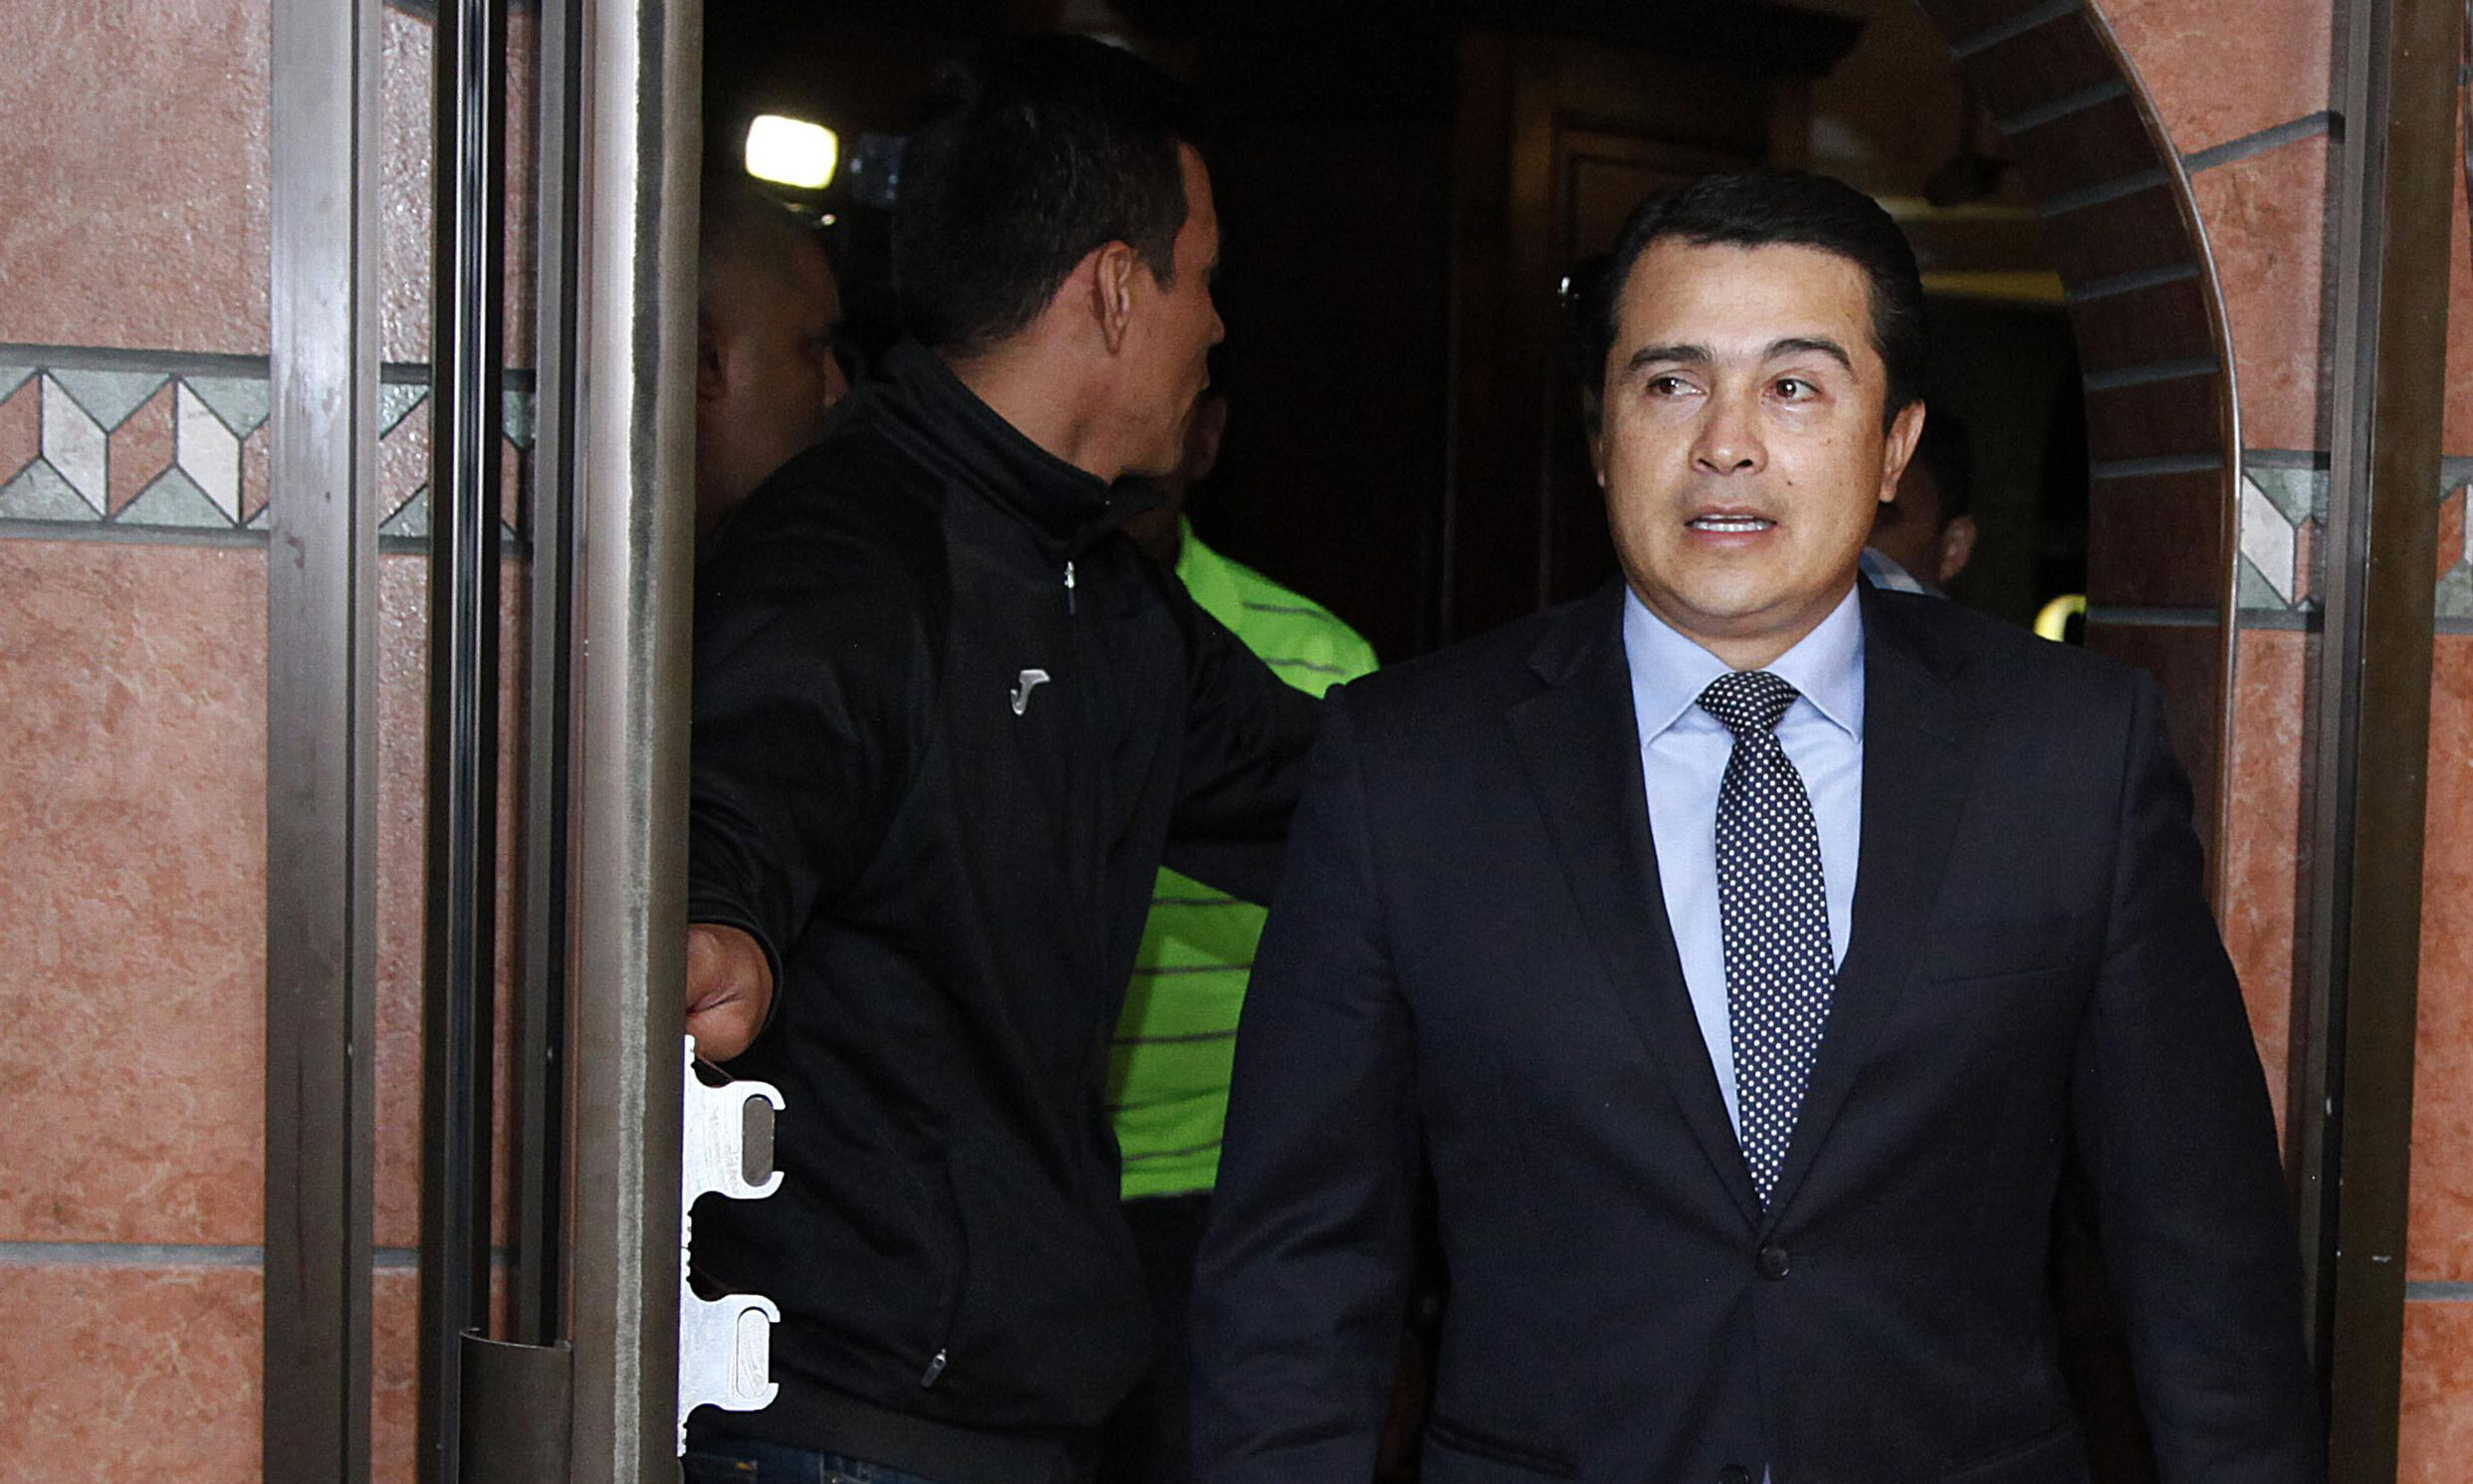 Brother of Honduras president found guilty in vast drug conspiracy case